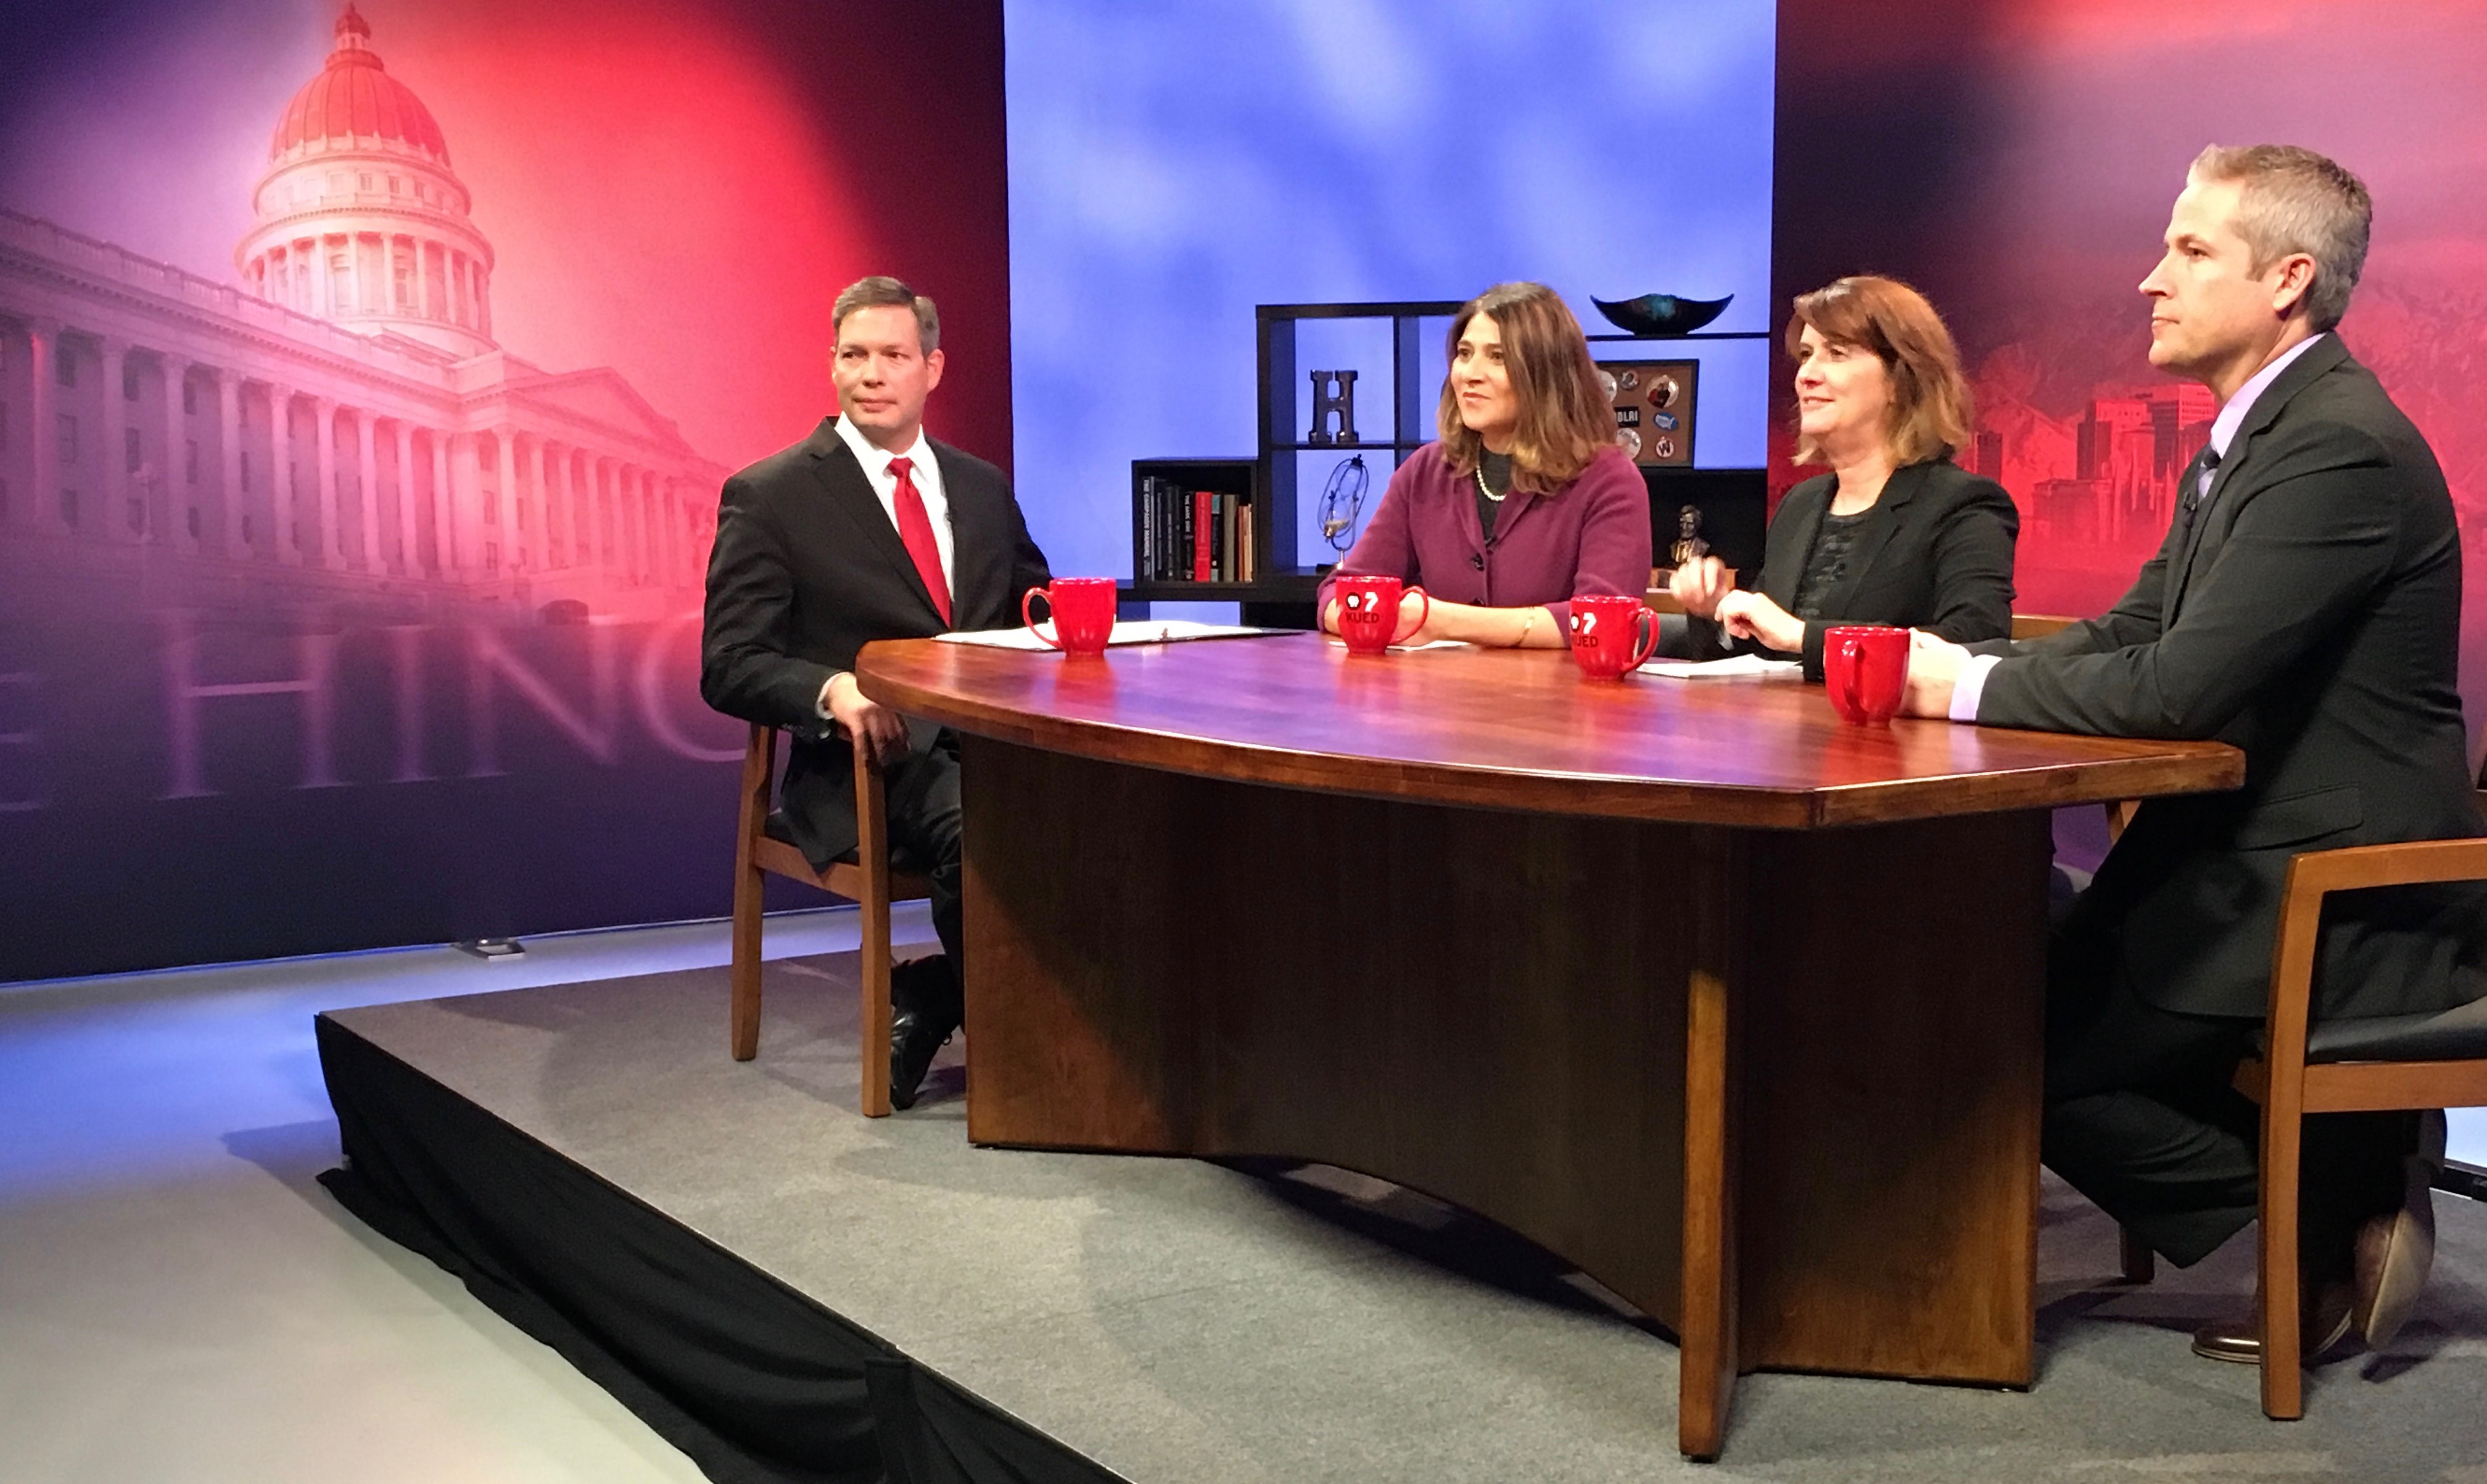 KUED and the Hinckley Institute of Politics have launched a weekly public affairs program that airs Friday nights at 7:30 p.m.